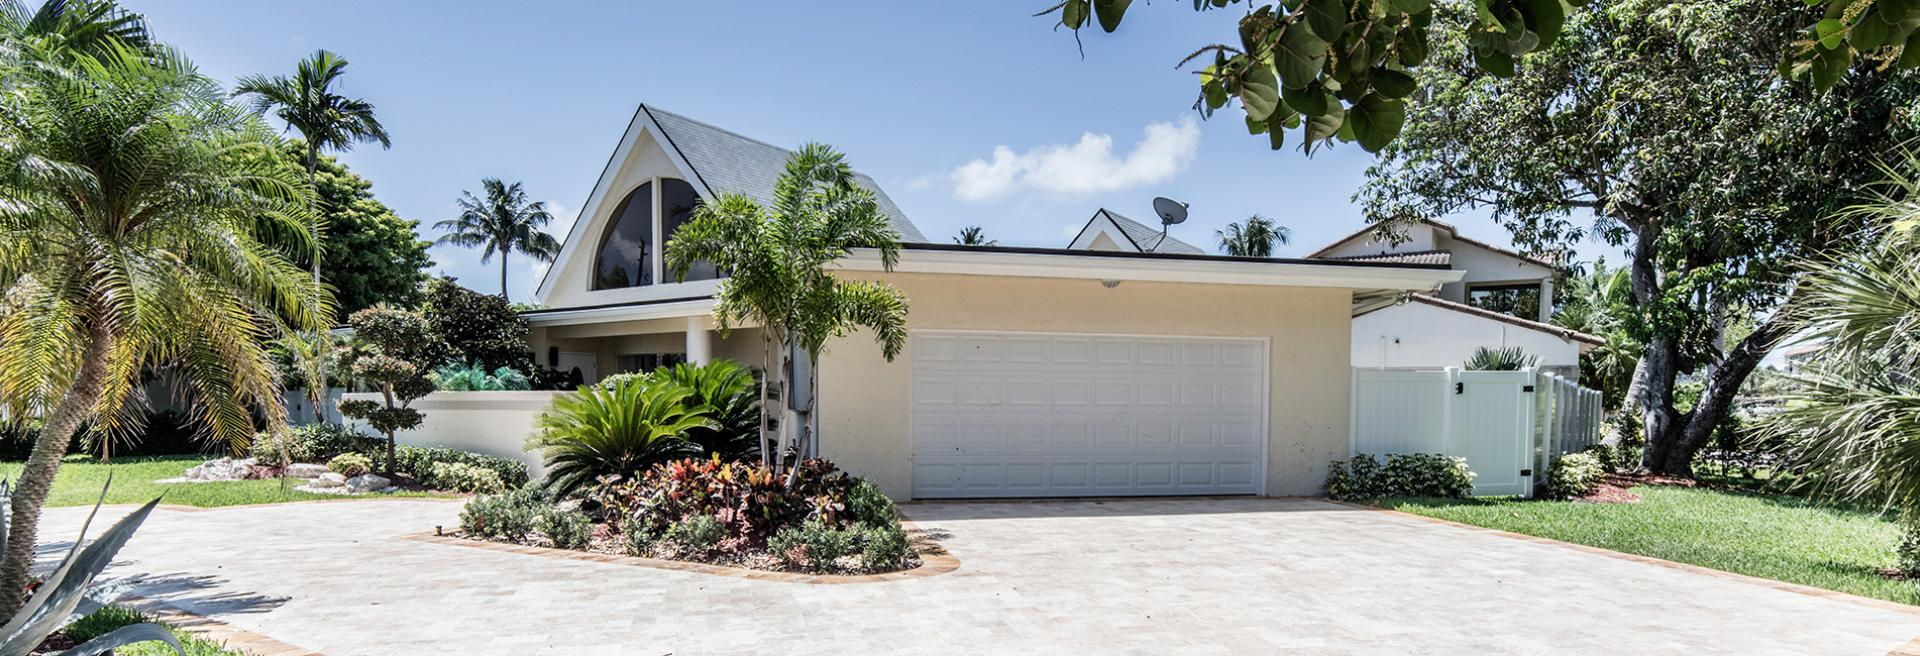 Golden Coast Real Estate - Villa Lara for sale in Delray Florida